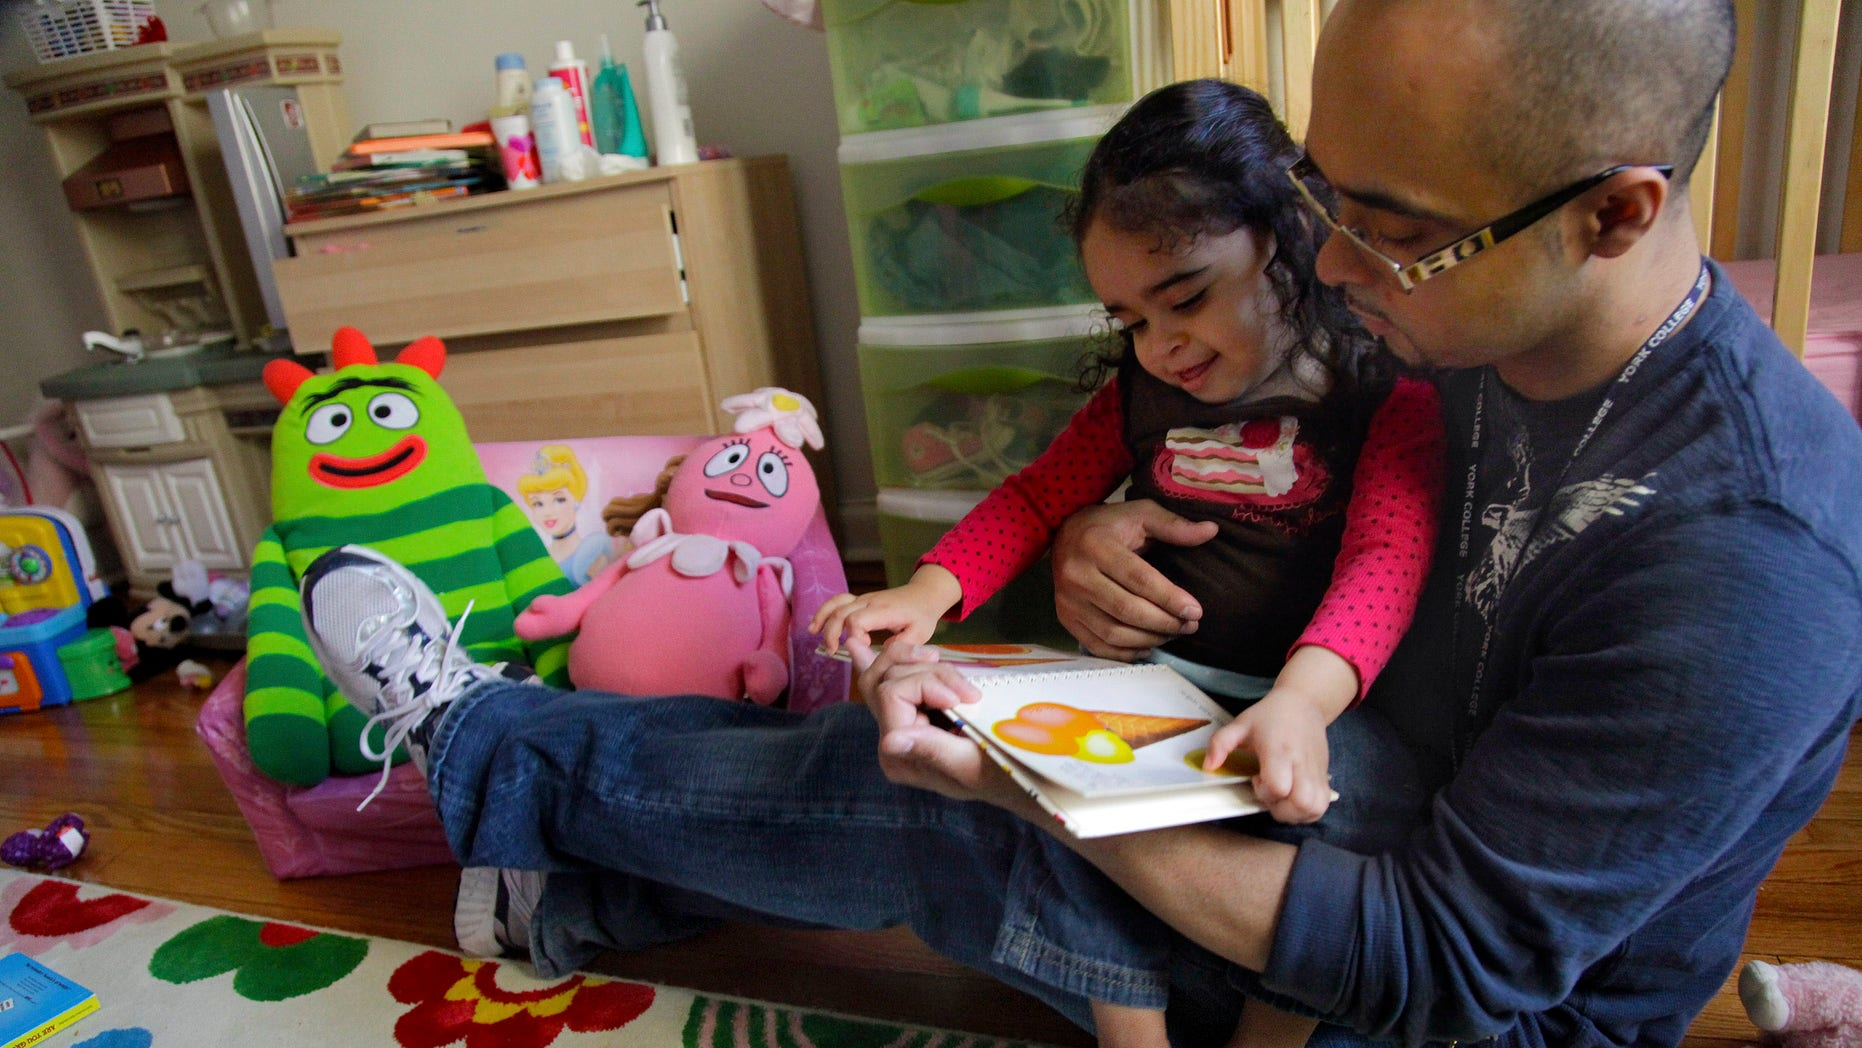 Christopher Astacio reads with his daughter Cristina, 2, recently diagnosed with a mild form of autism. (AP Photo/Bebeto Matthews)